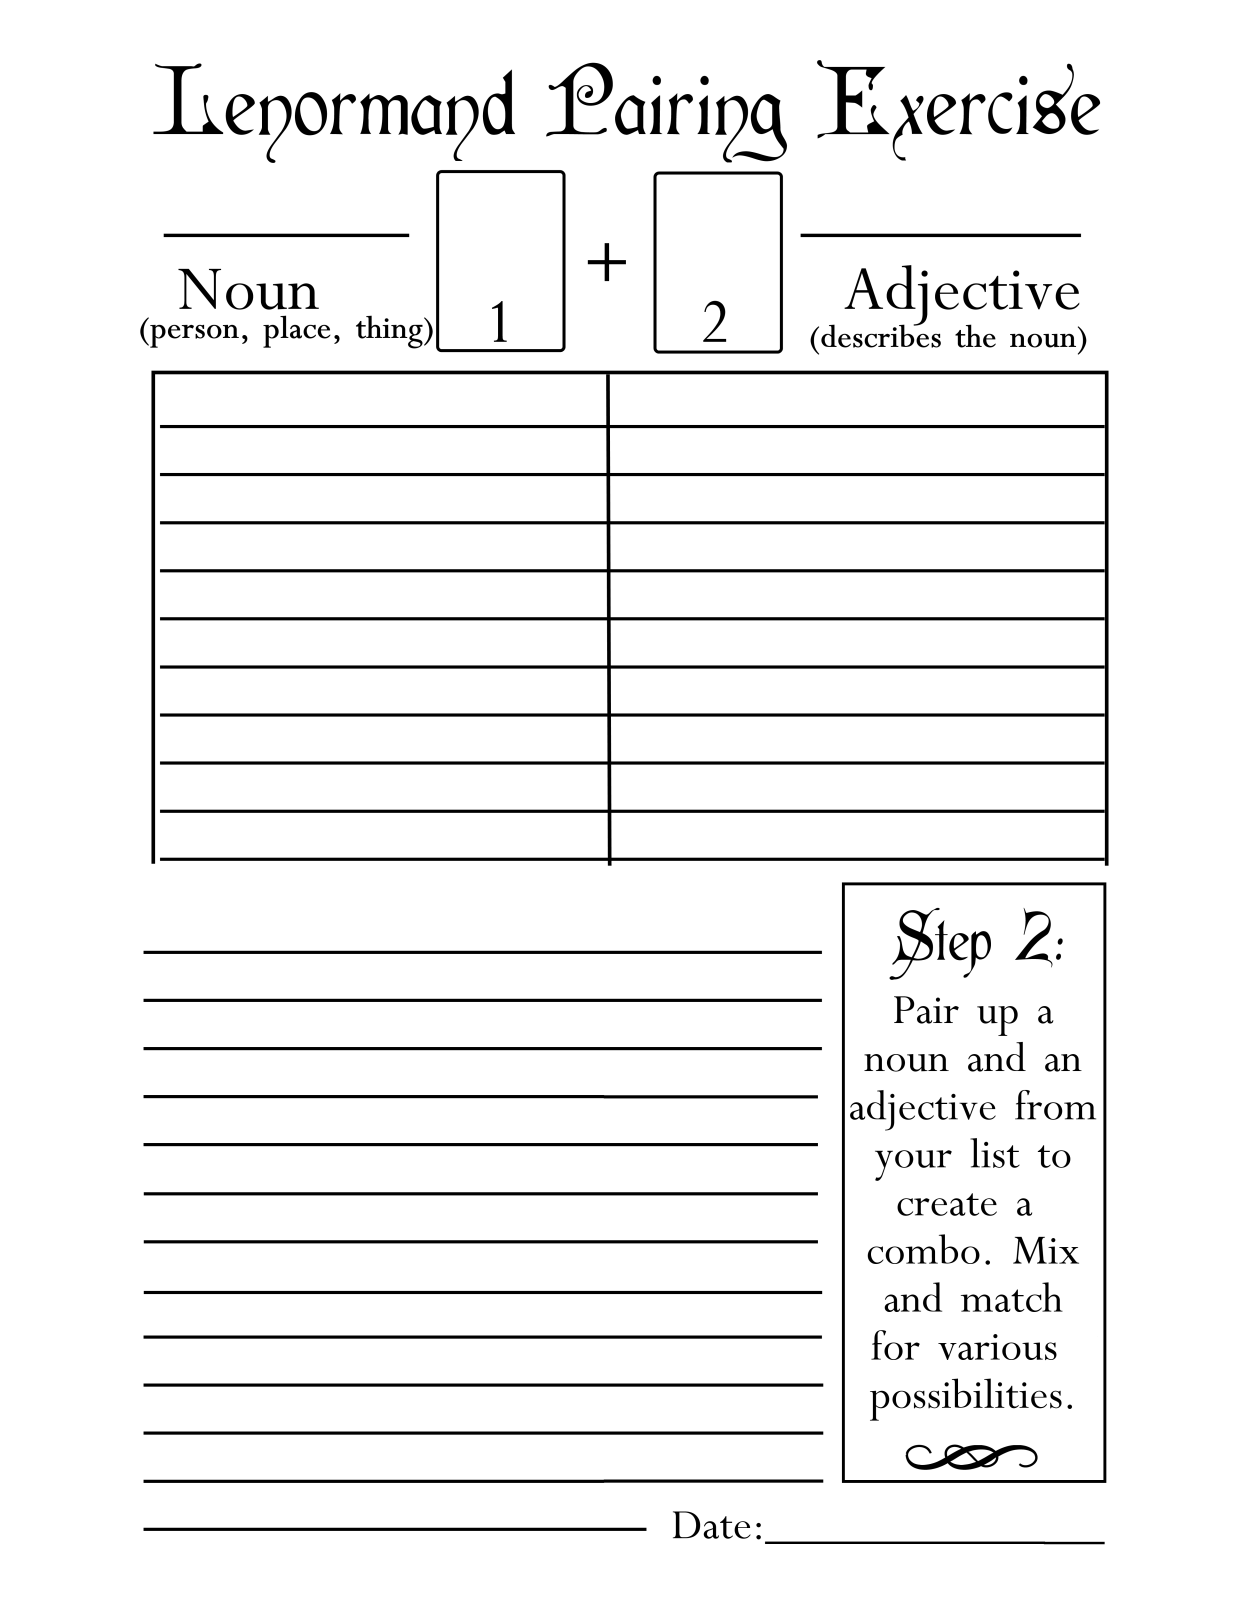 Lenormand Pairing Exercise Worksheet